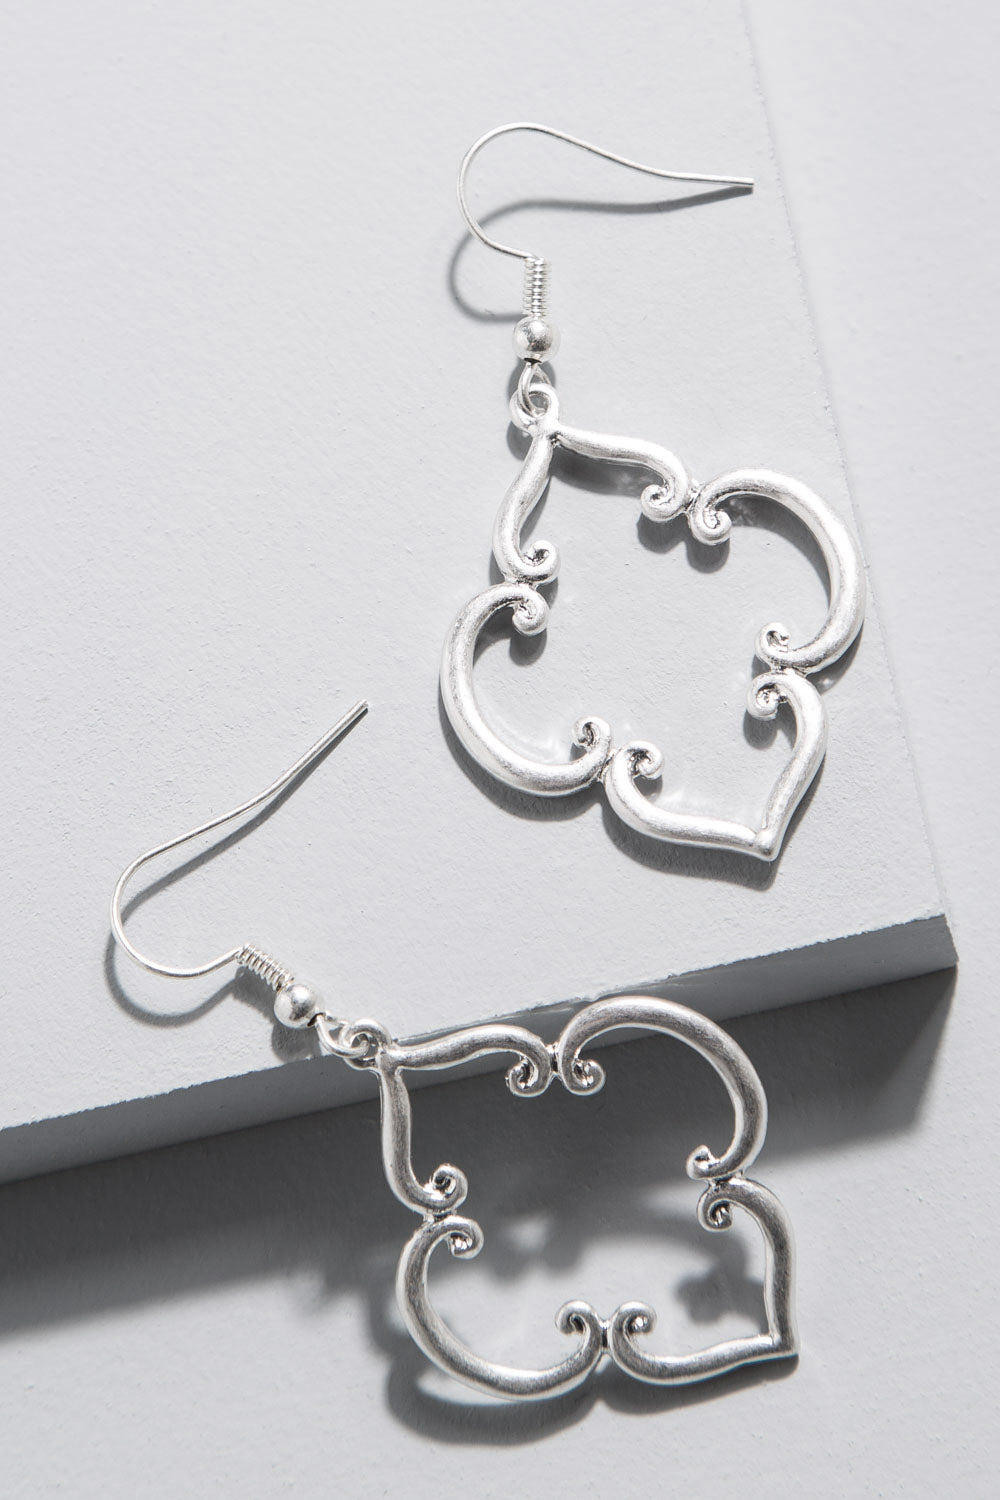 Type 2 Timeless Love Earrings